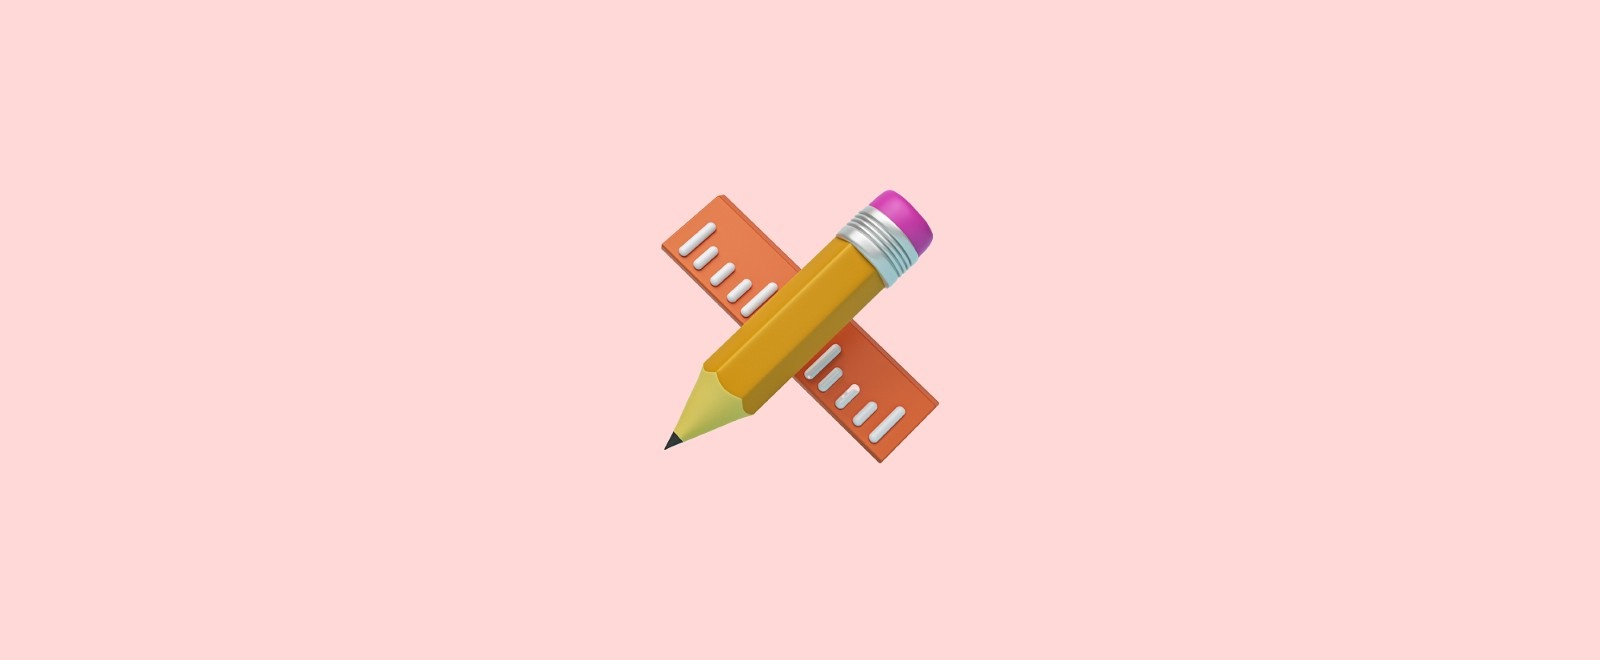 A 3D pencil and ruler on a pink background